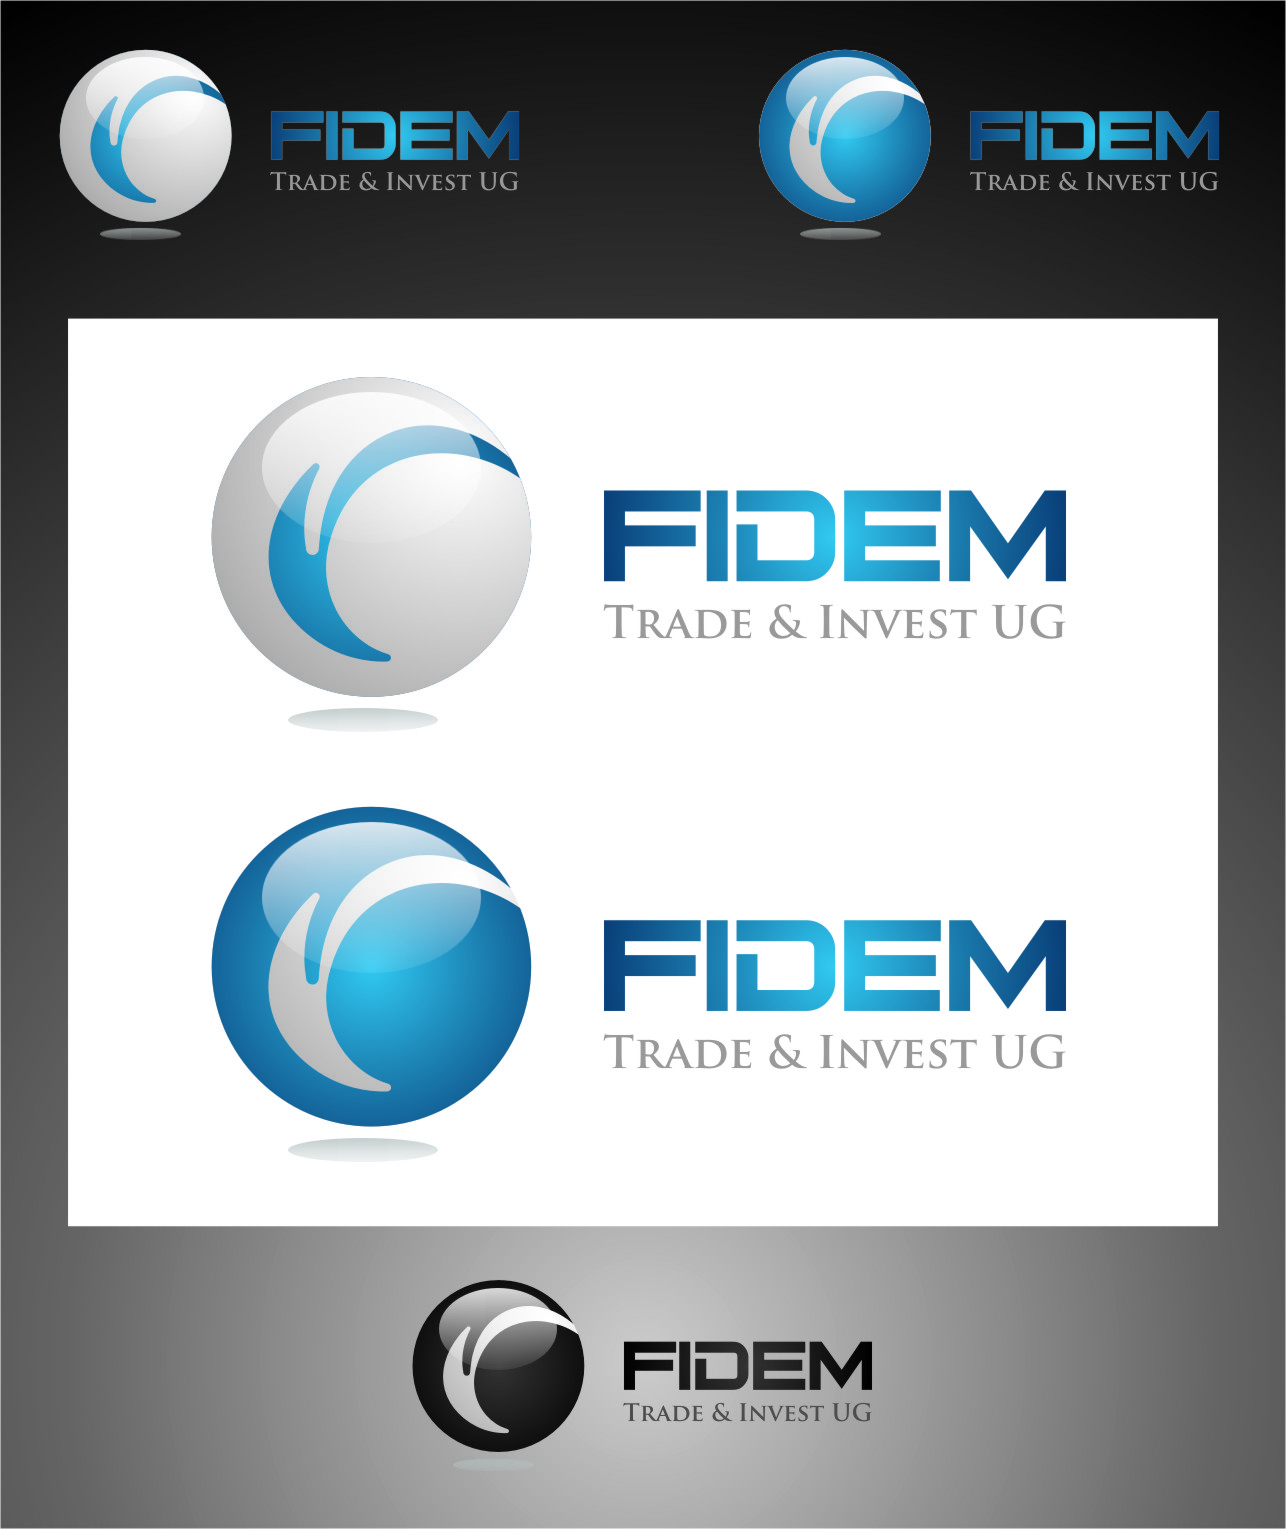 Logo Design by RasYa Muhammad Athaya - Entry No. 310 in the Logo Design Contest Professional Logo Design for FIDEM Trade & Invest UG.